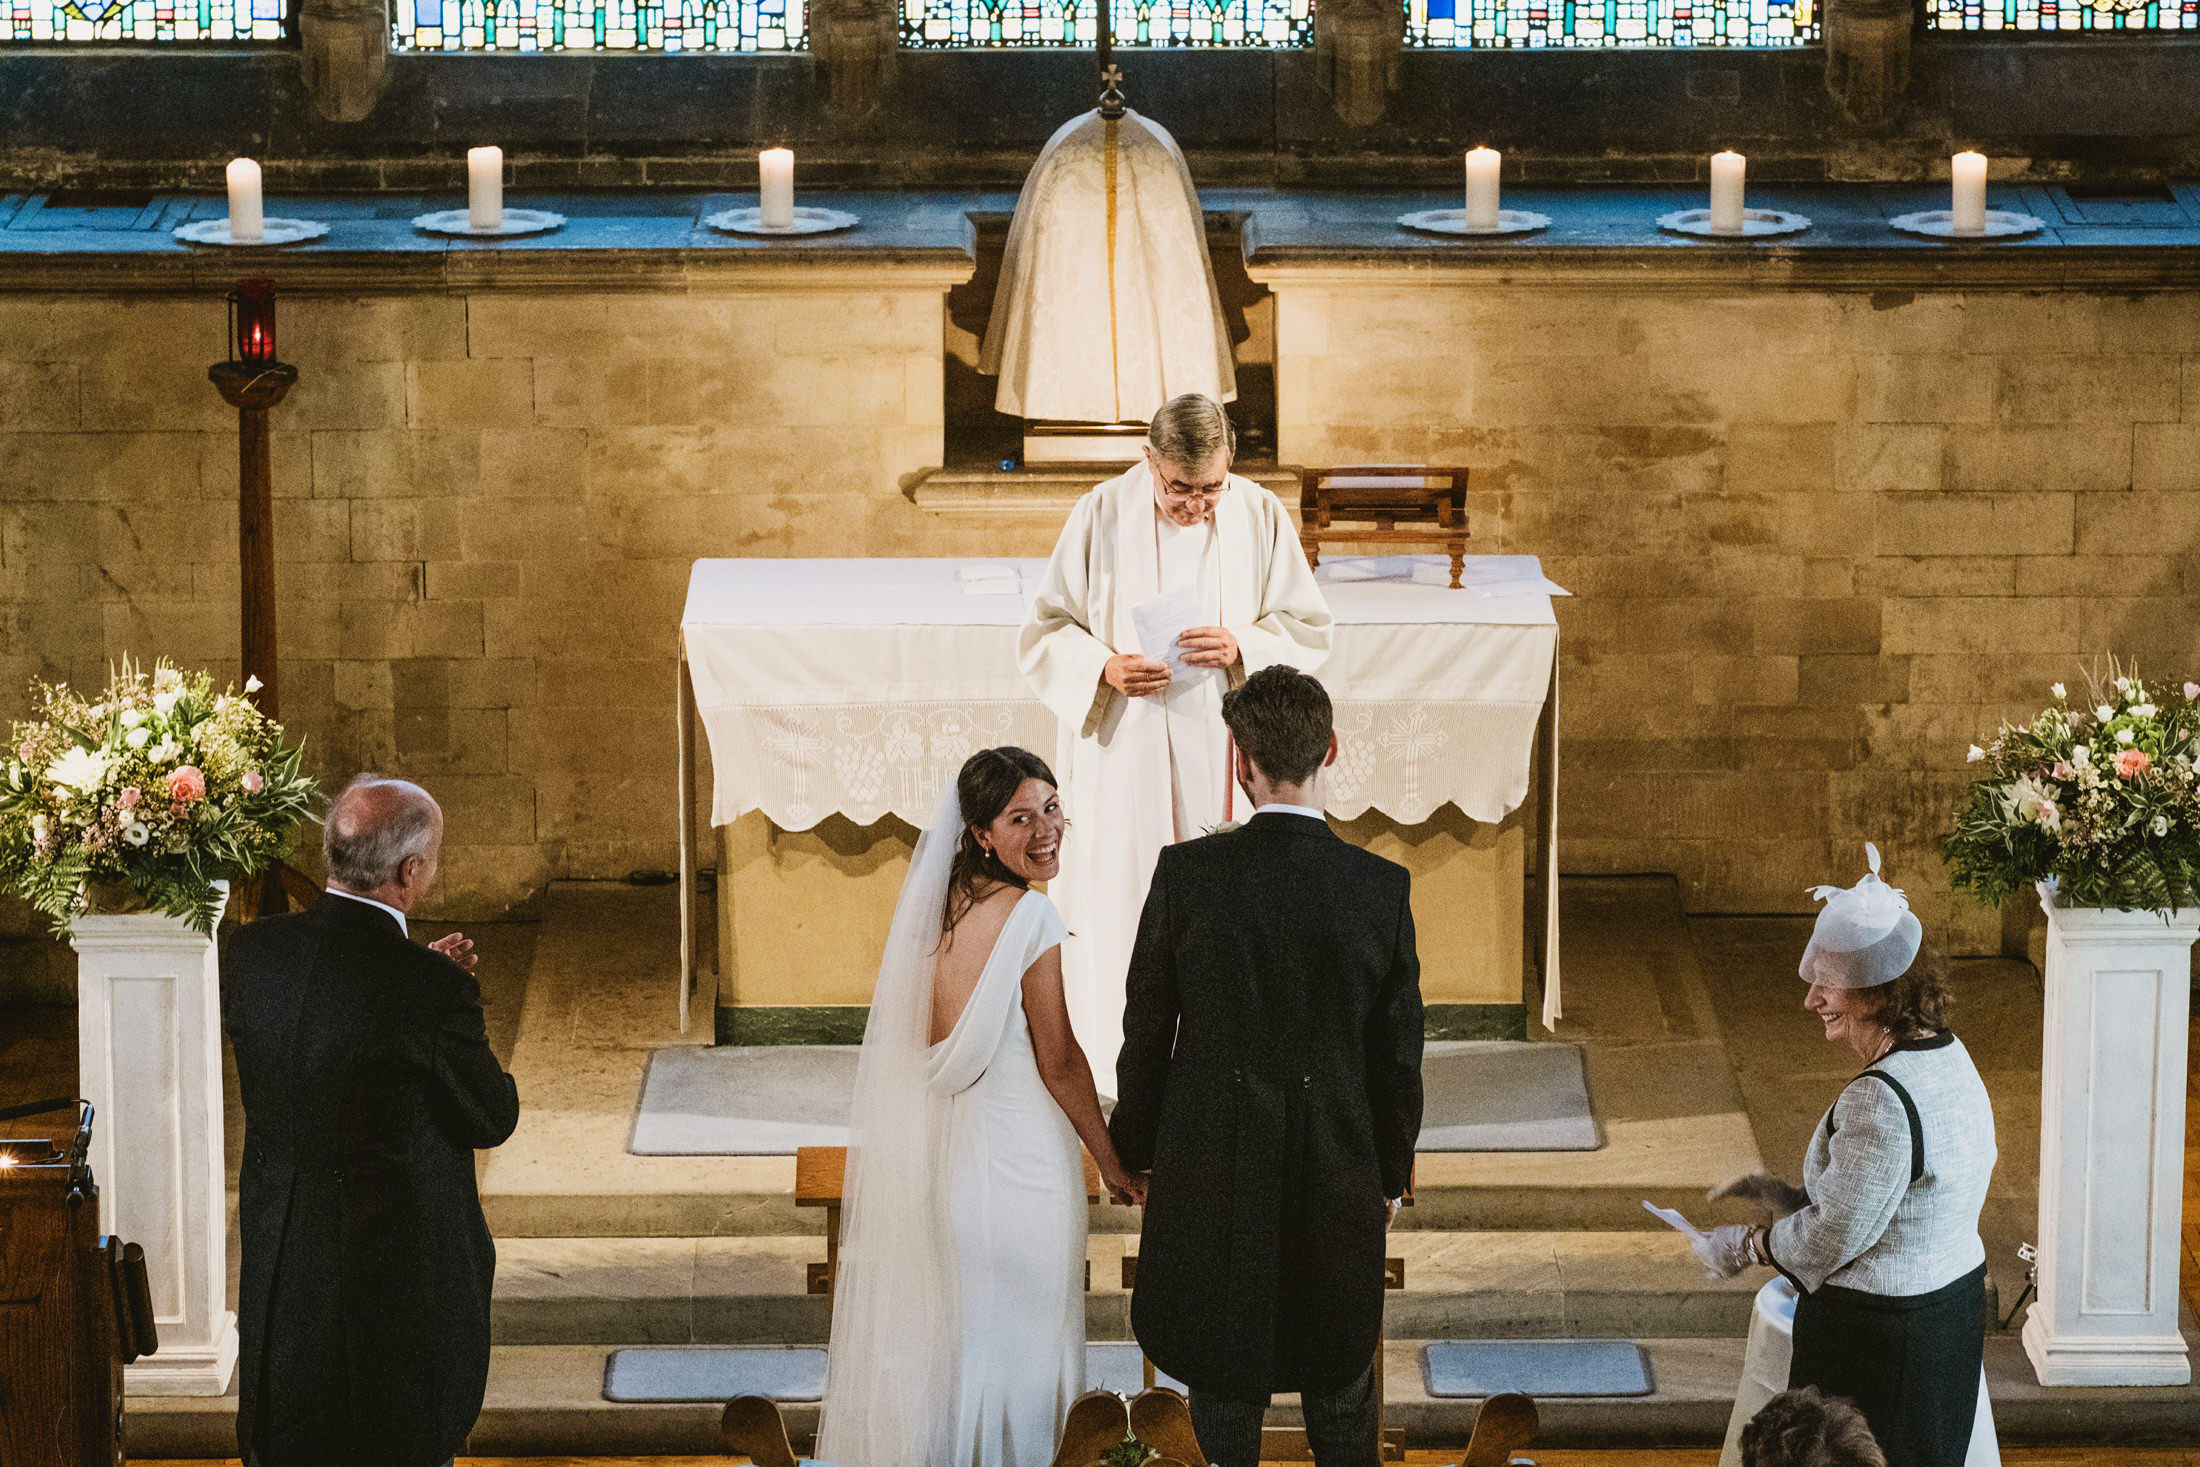 Bride smiles back towards her guest whilst standing with her groom and witnesses at the altar of St Ethelreda's RC Church, London during an intimate wedding ceremony. Documentary photograph captured from church balcony